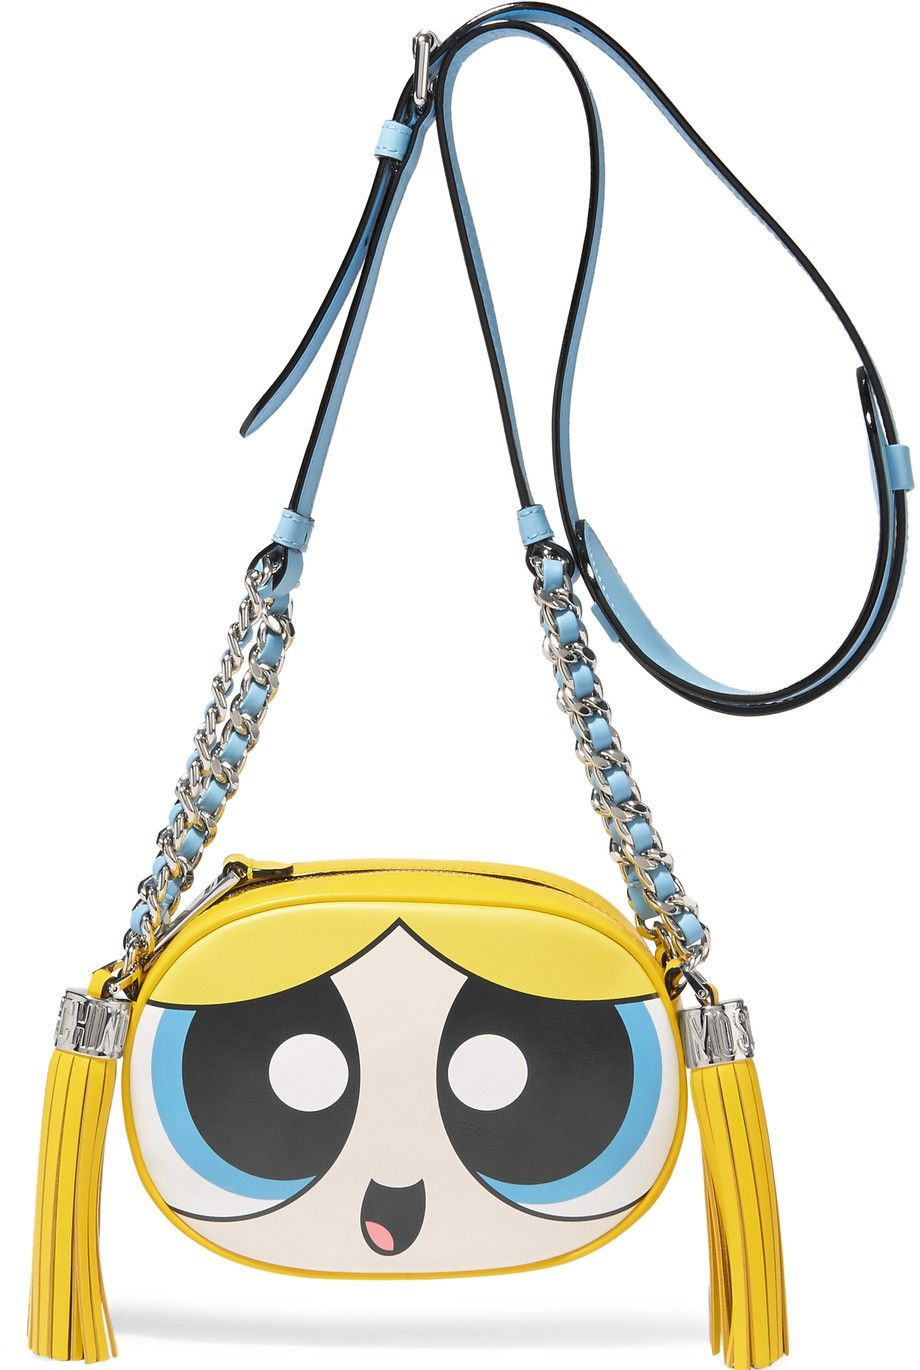 ada42f9d2a3 Moschino Powerpuff Girls Bubbles Women's Shoulder Crossbody Leather Bag  │Represented by Chiara Ferragni, Paris Hilton